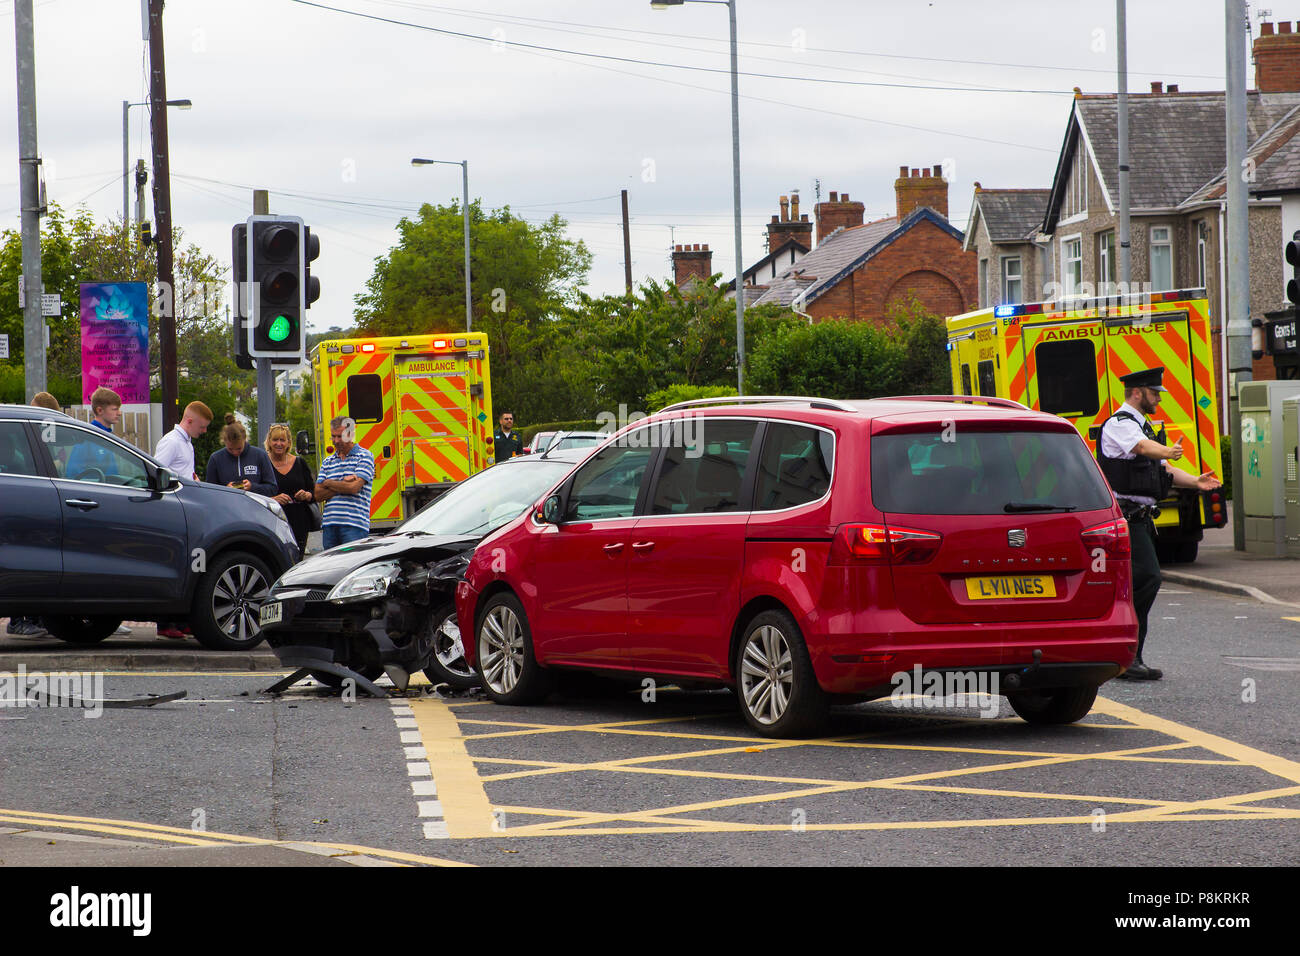 Ballyholme, Northern Ireland. 12th July 2018. A multi vehicle road traffic accident at Ballyholme in Bangor County Ddown Northern Ireland with two ambulances in attendance. details of any injured persons are not yet available but the image shows extensive damge to vehichles with one having mounted the pavement at the entrance to the Windmill Road Credit: MHarp/Alamy Live News Stock Photo